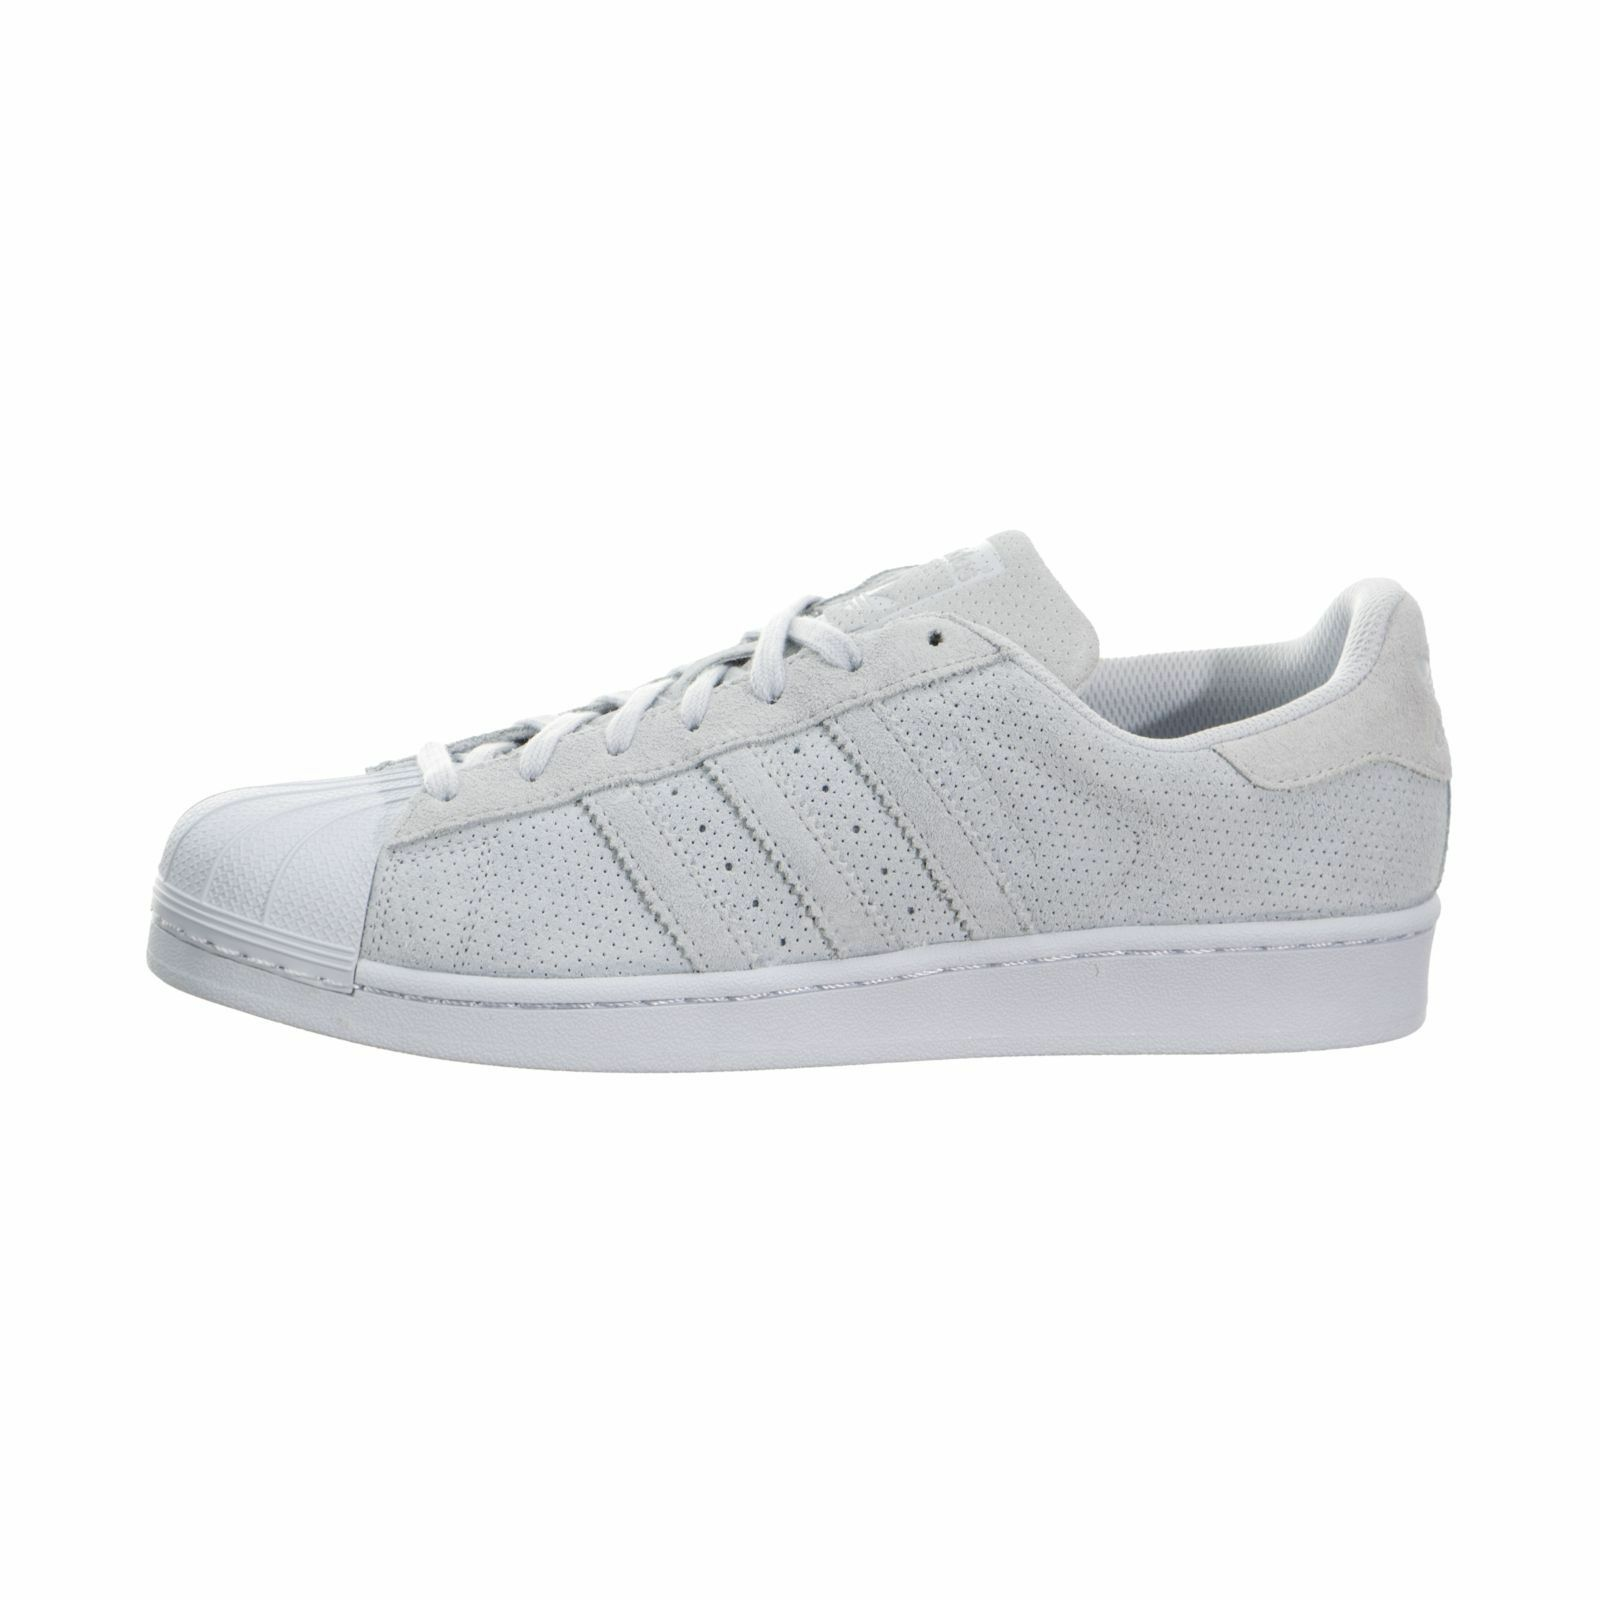 Adidas Superstar RT (Suede Perf) aq4168